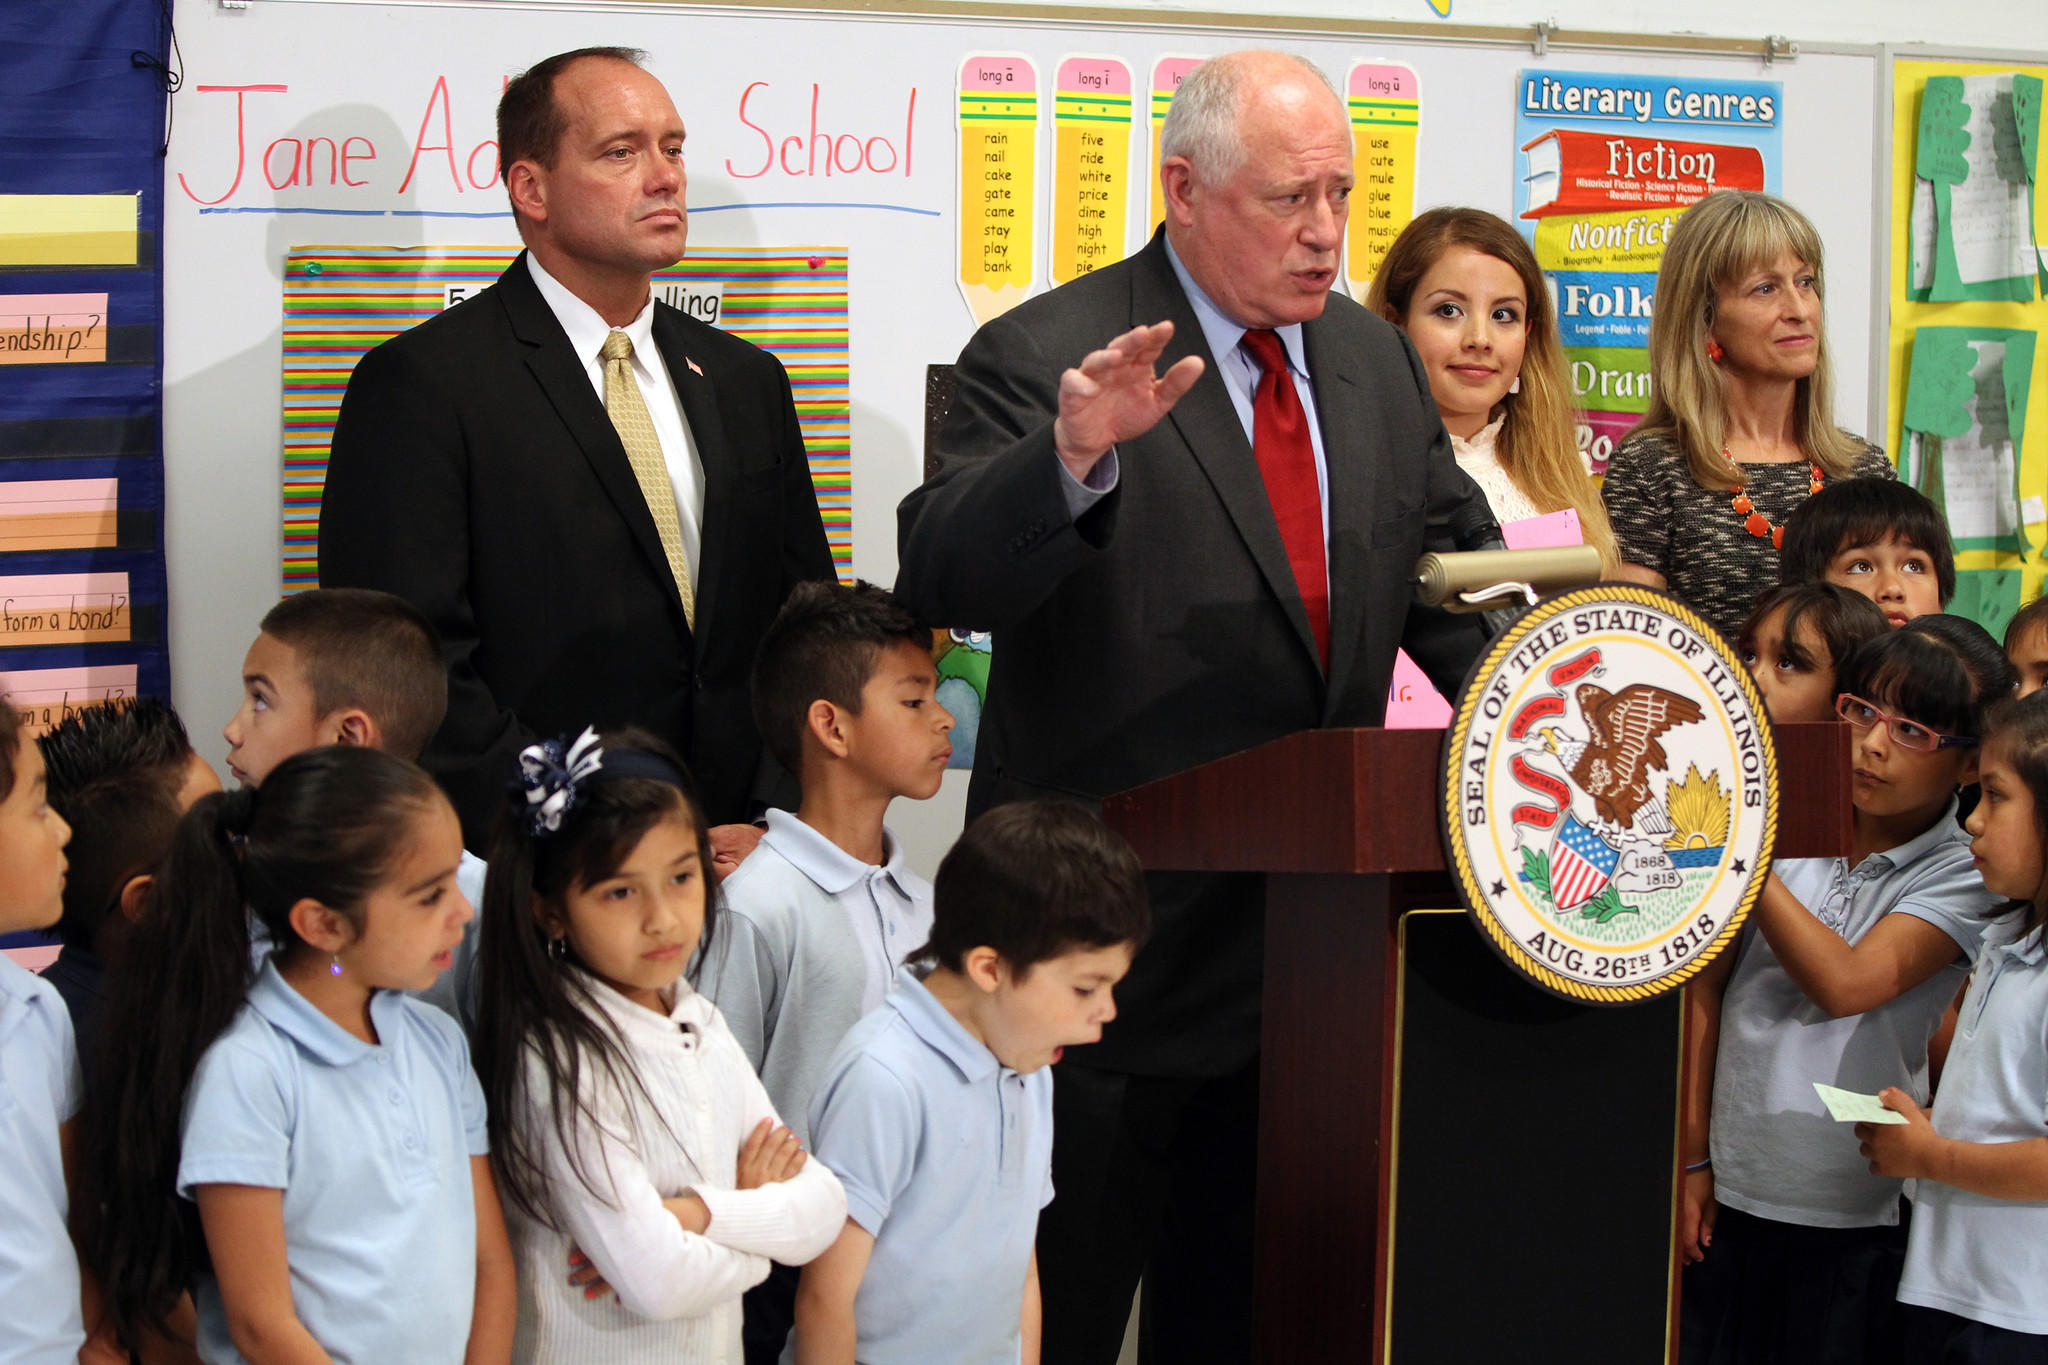 Gov. Pat Quinn at Jane Addams Elementary School in Chicago on Tuesday.